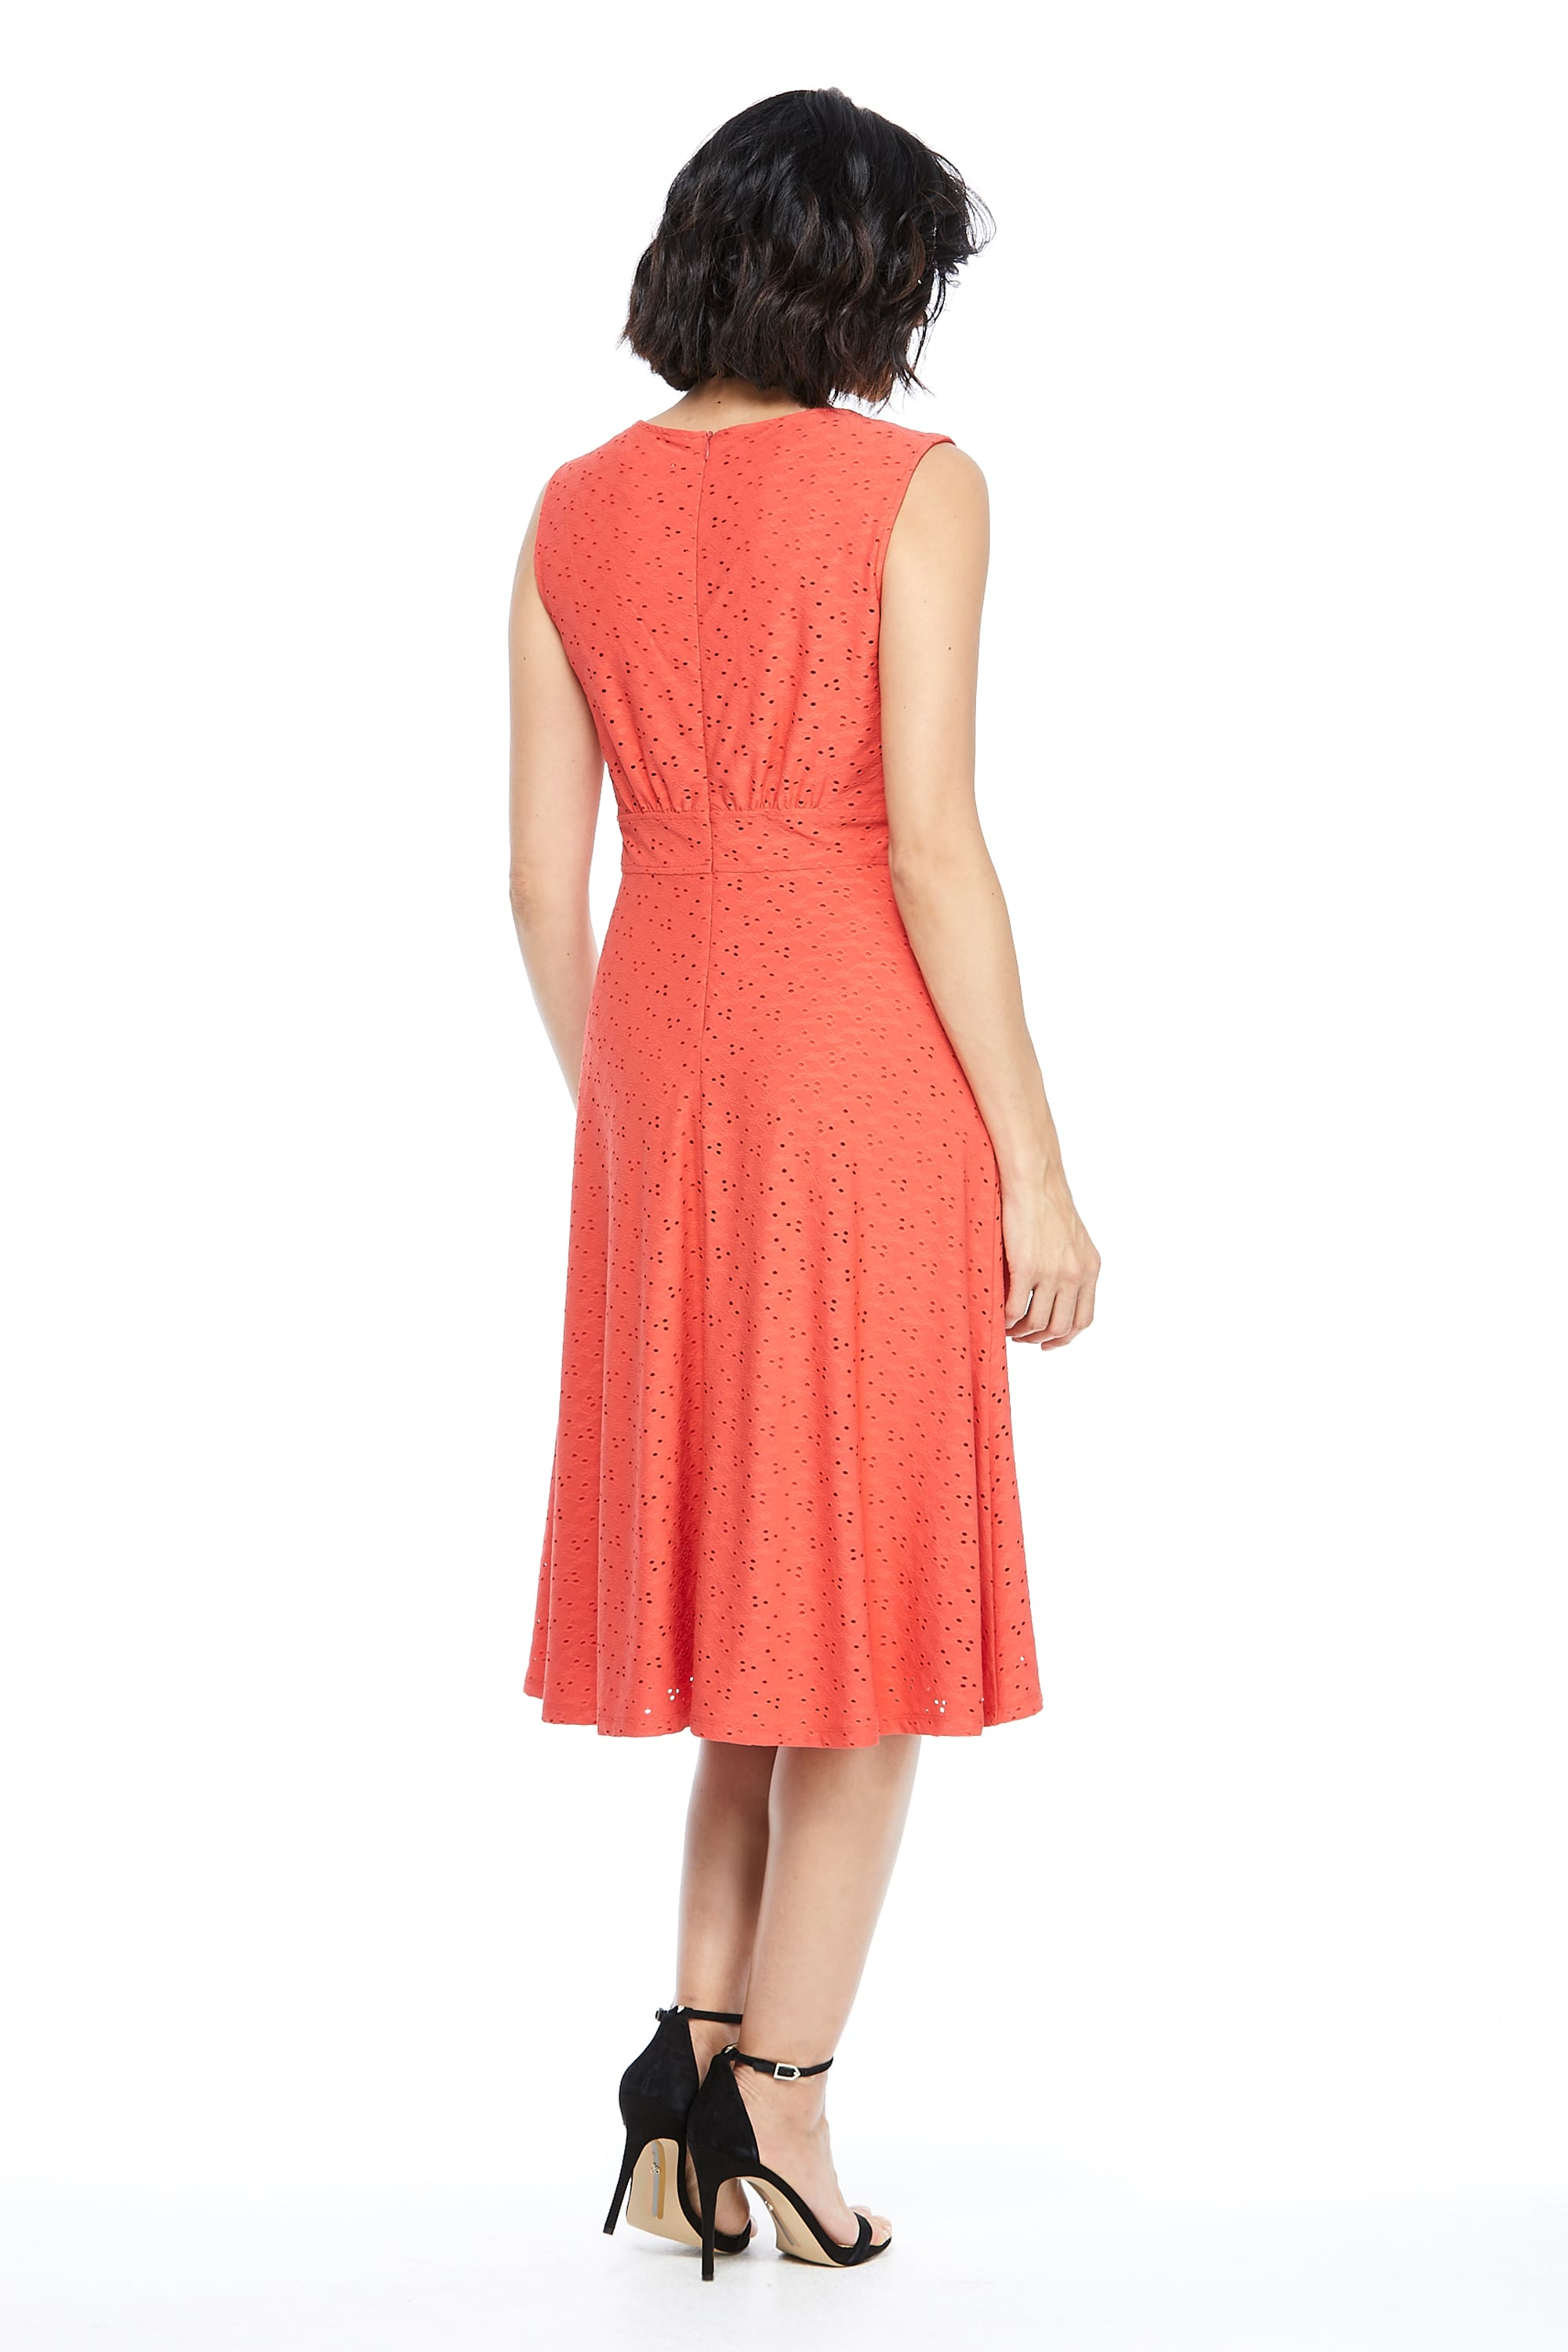 Sleeveless Eyelet Jersey Midi Dress - Coral - Back